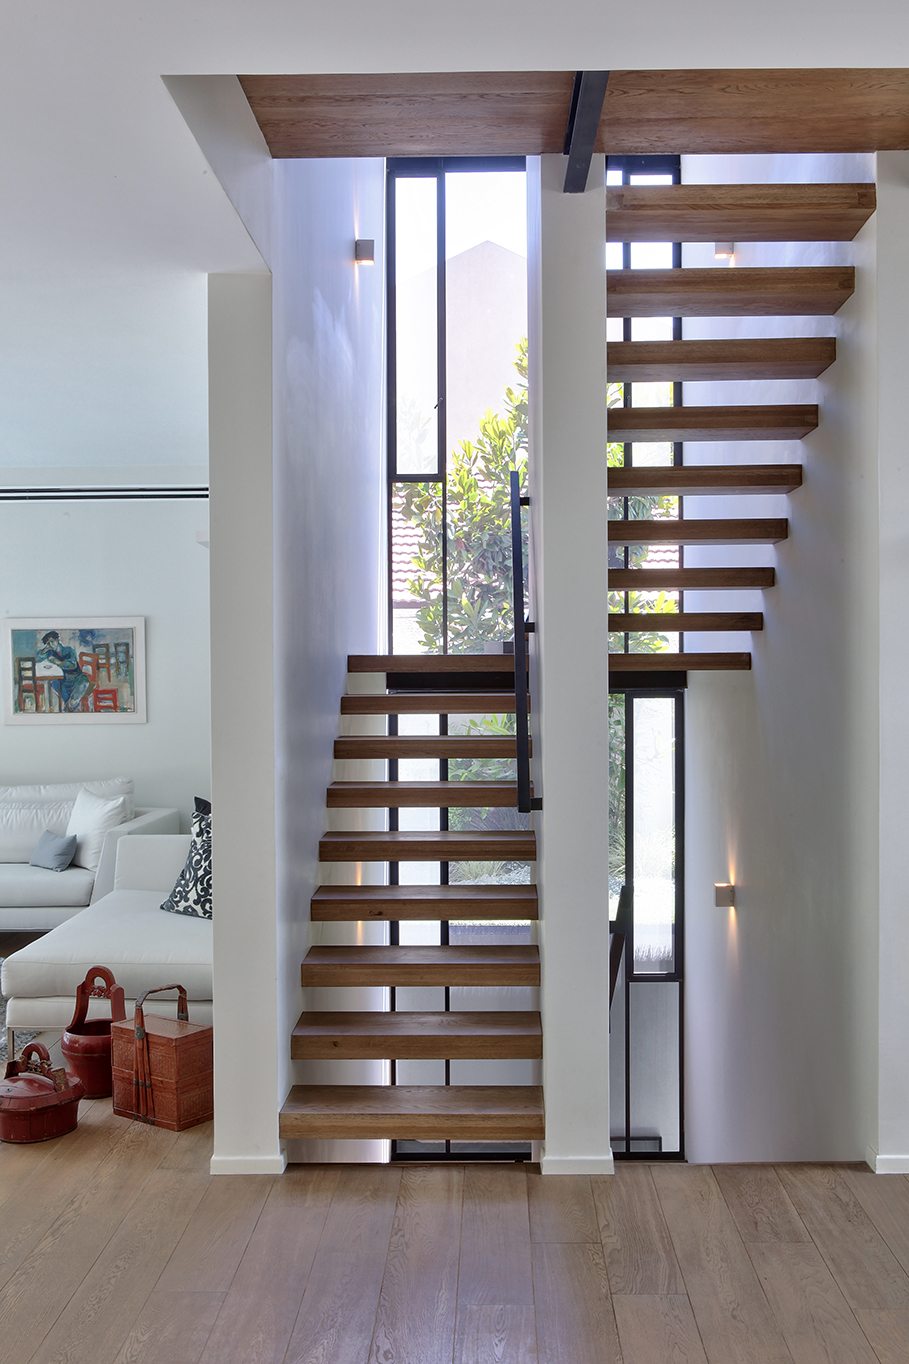 House in Ra'anana - Staircase 1